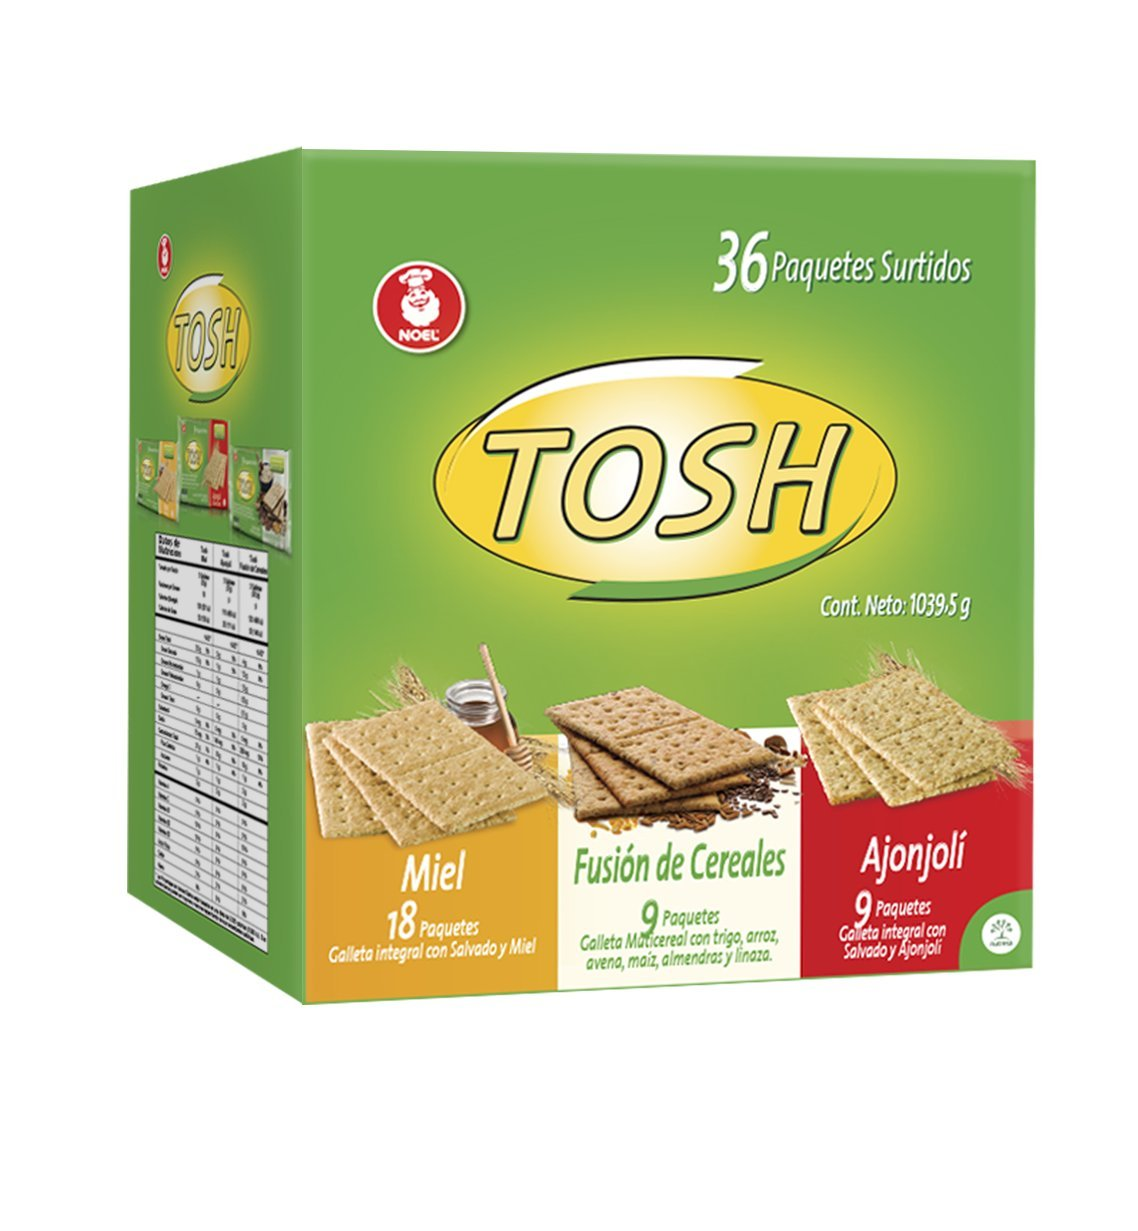 Tosh Cracker Assorted 36Oz (Pack of 36 un) Noel